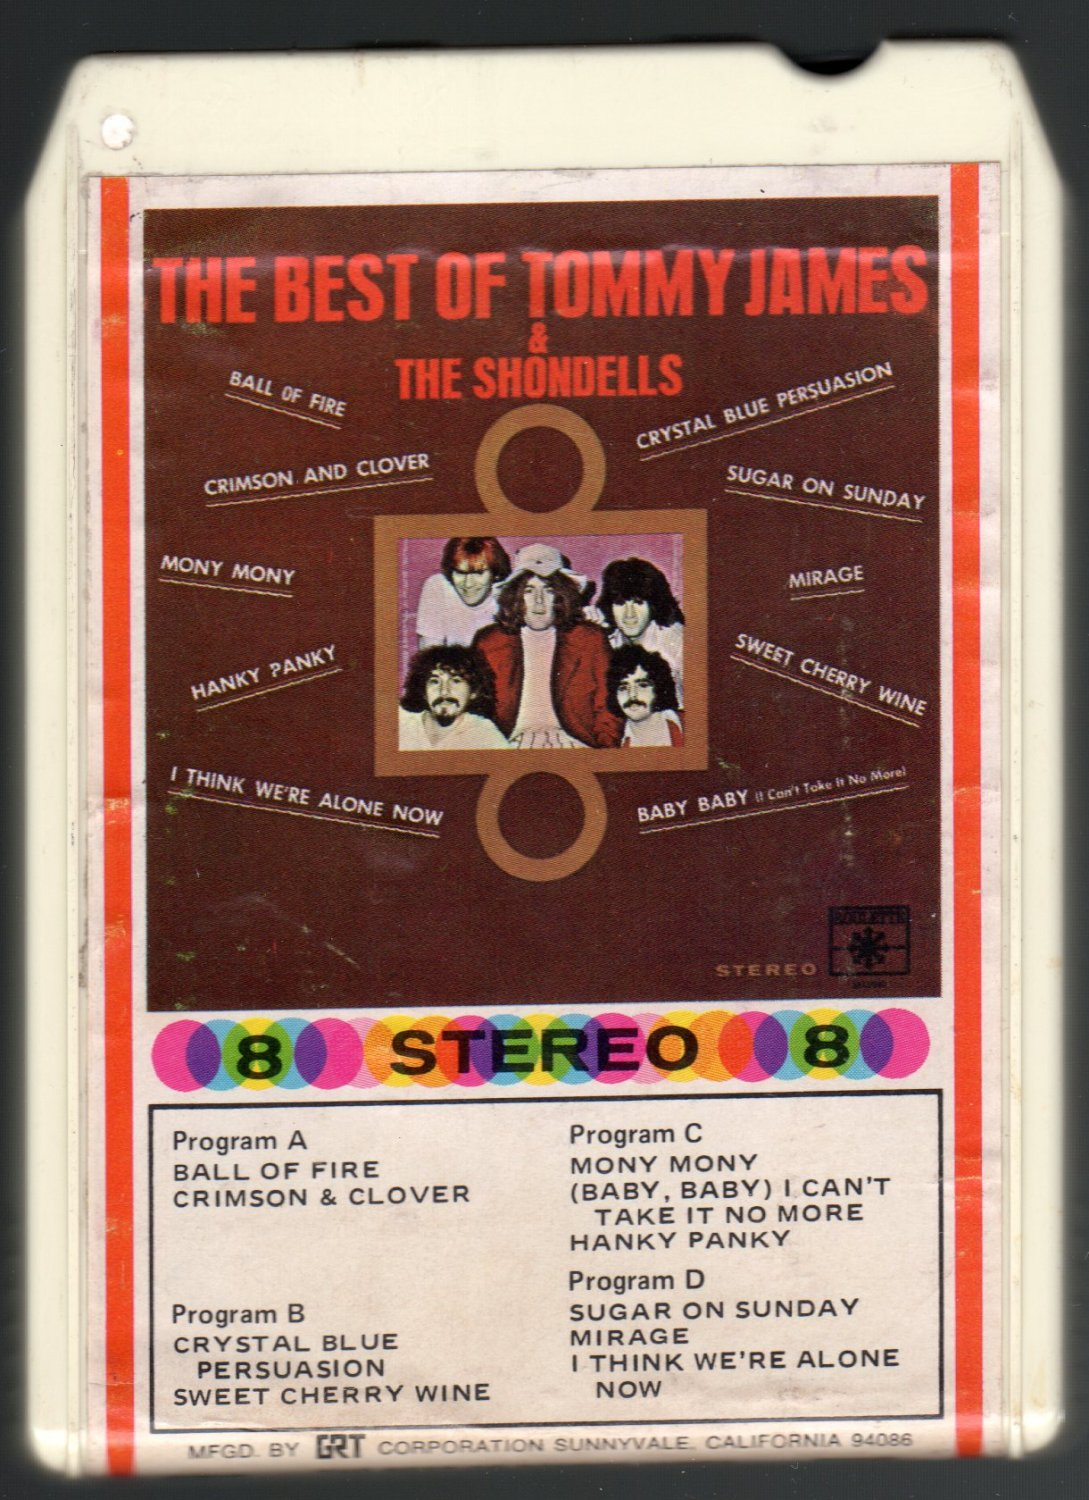 Tommy James & The Shondells - The Best Of 1969 AMPEX ROULETTE A43 8-TRACK TAPE